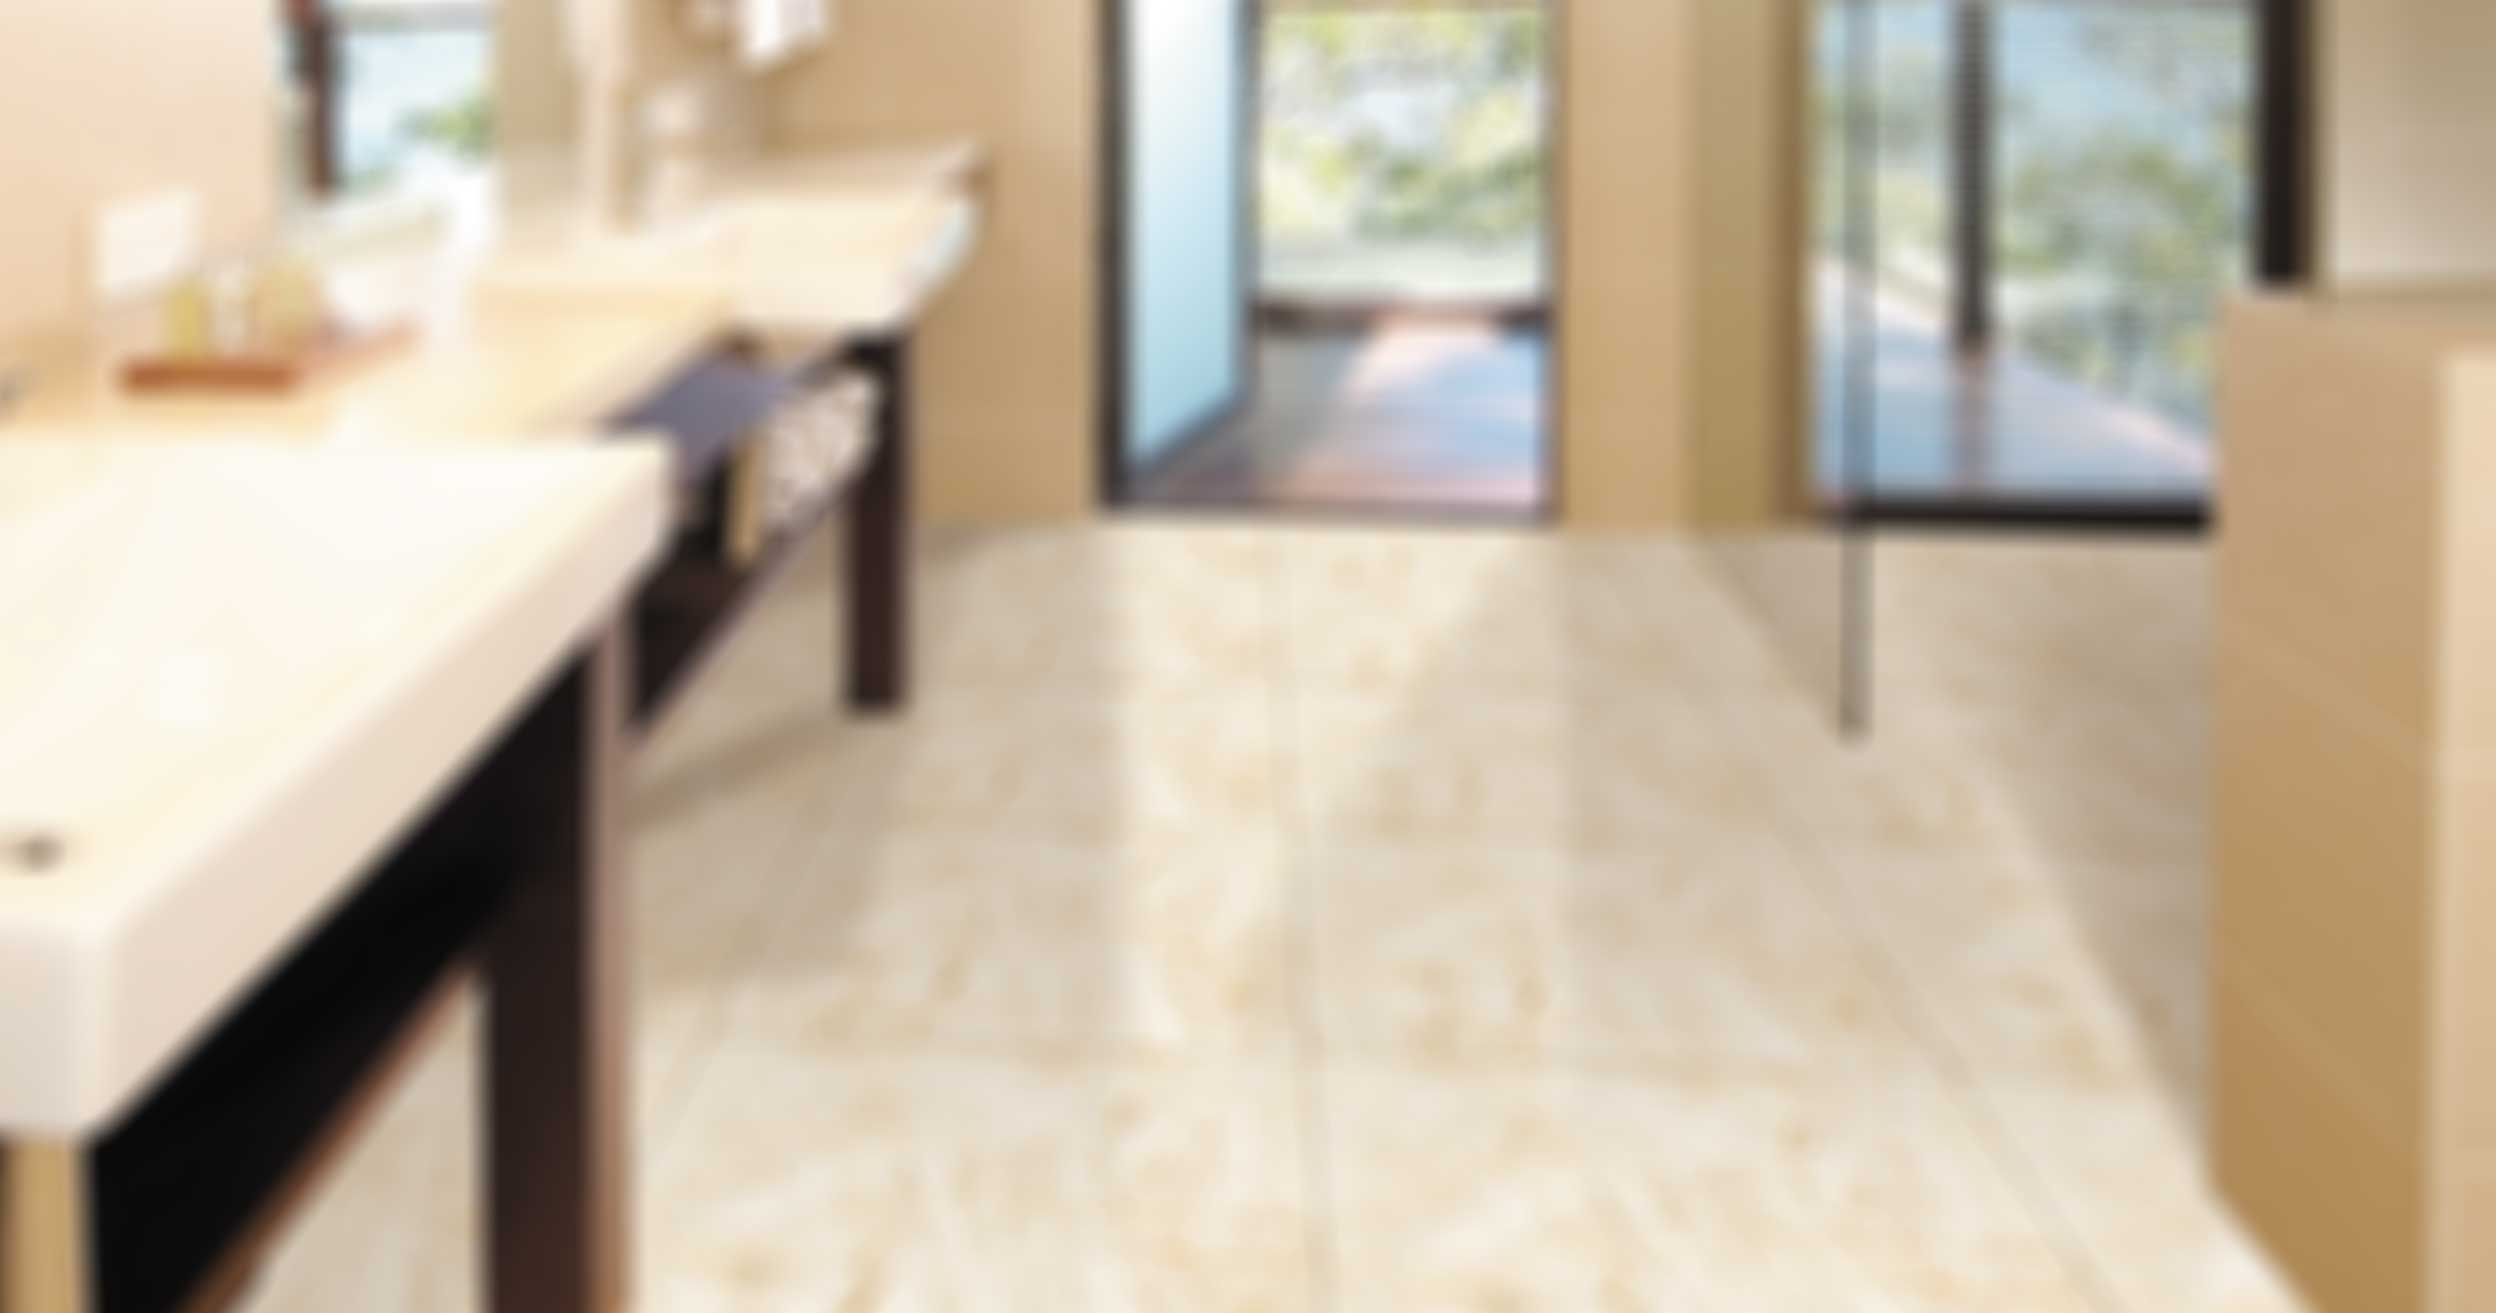 Welcome to zed vitrified tiles we are the manufacturer and exporter bespoke individual innovative dailygadgetfo Choice Image